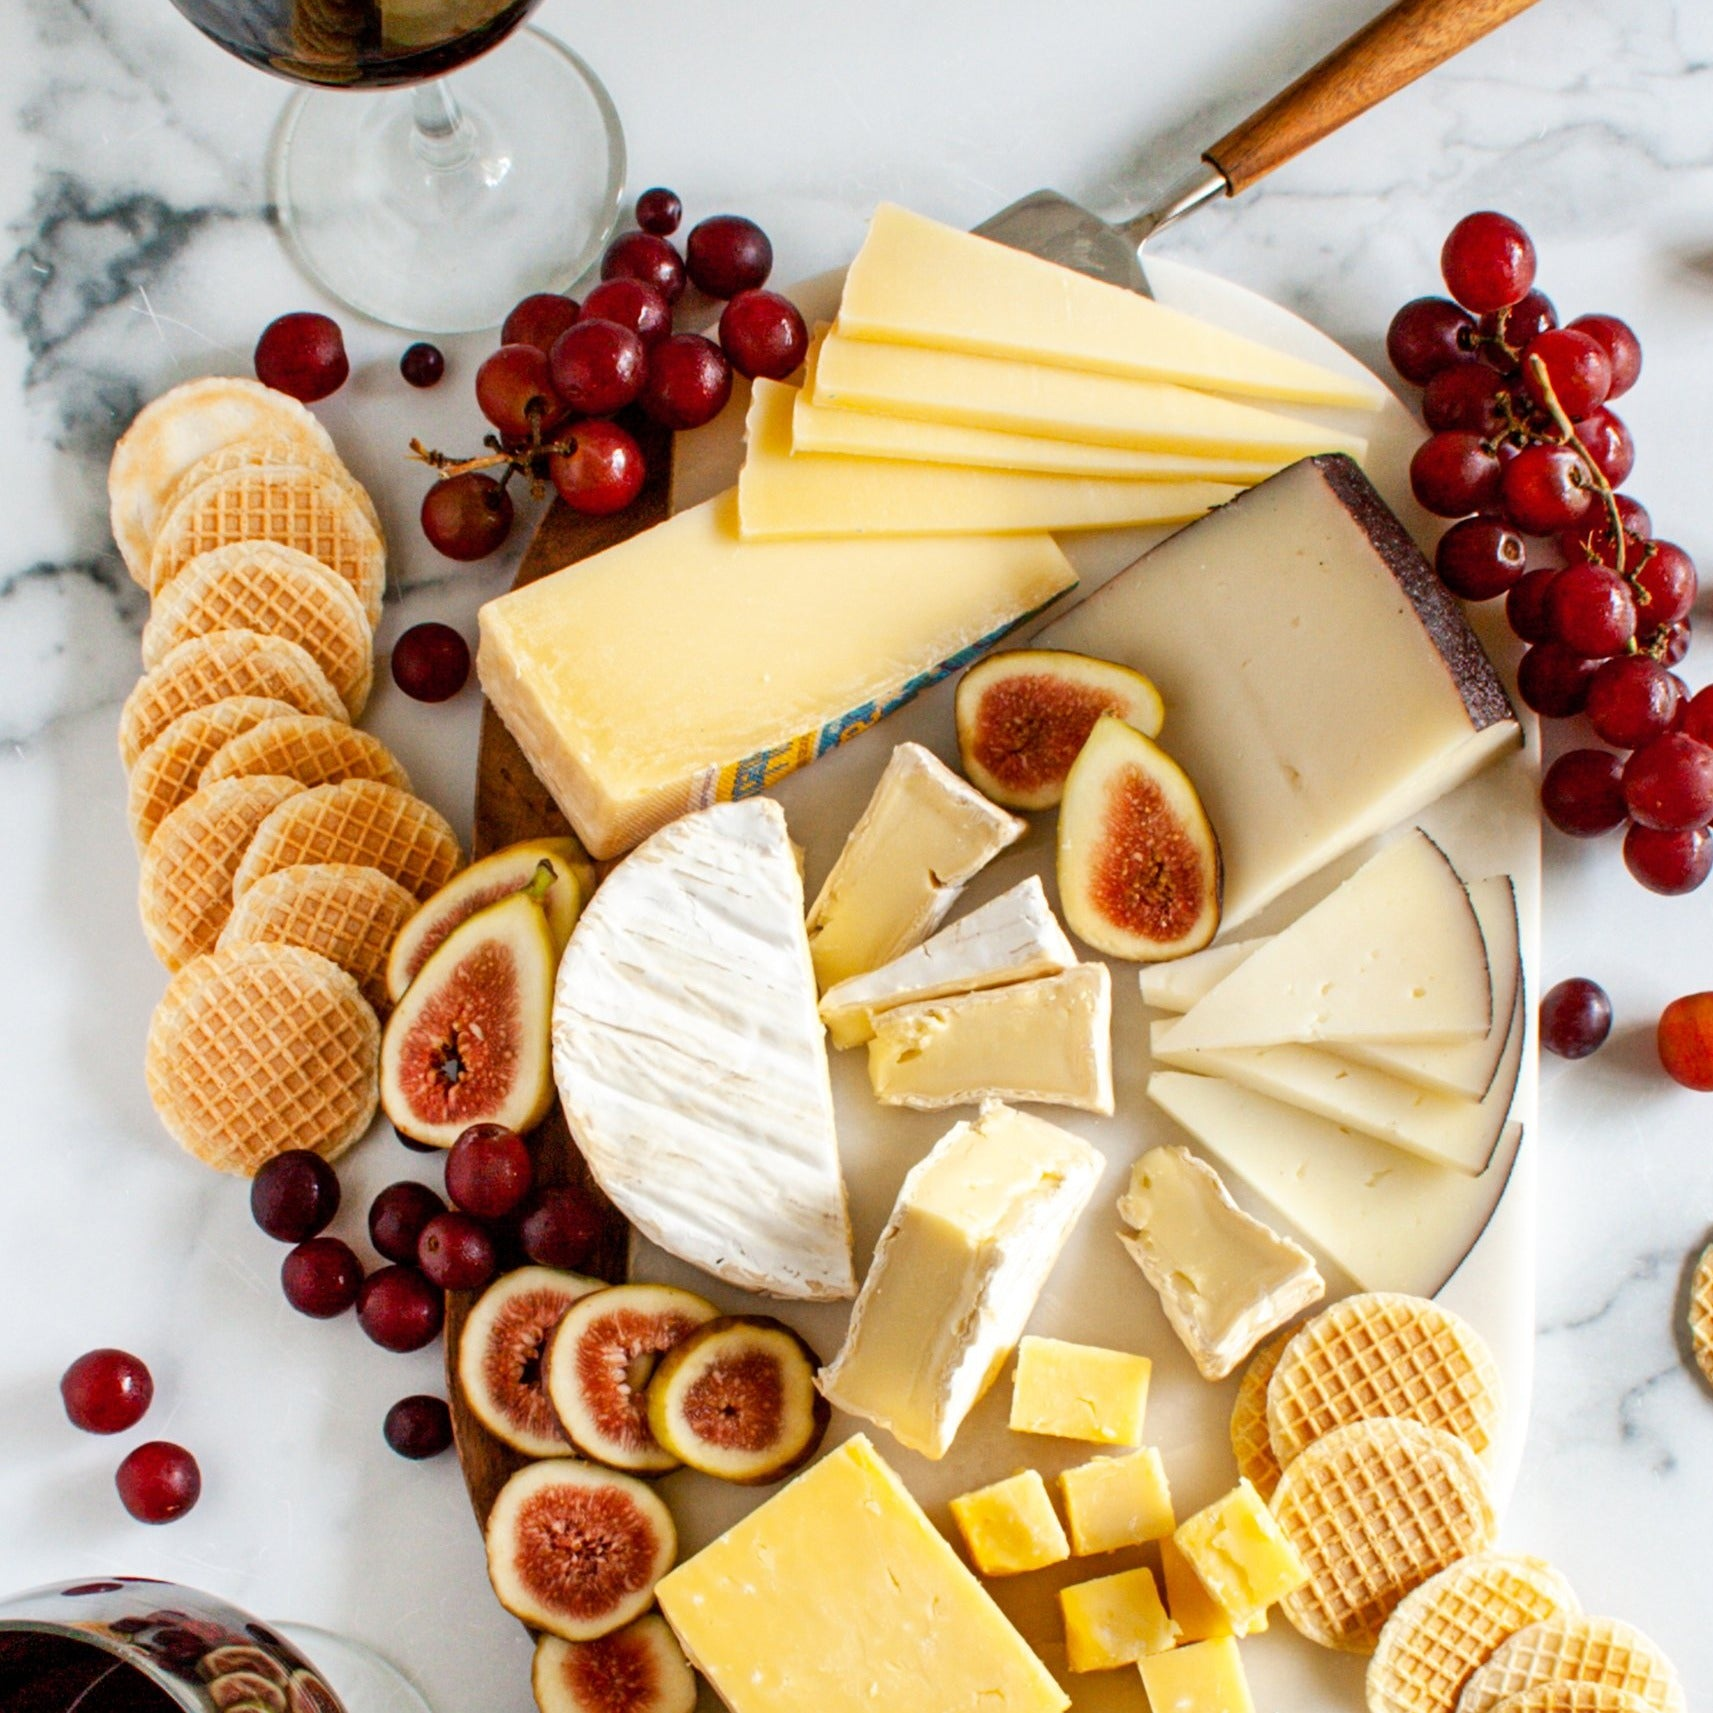 The Best of Europe Cheese Assortment